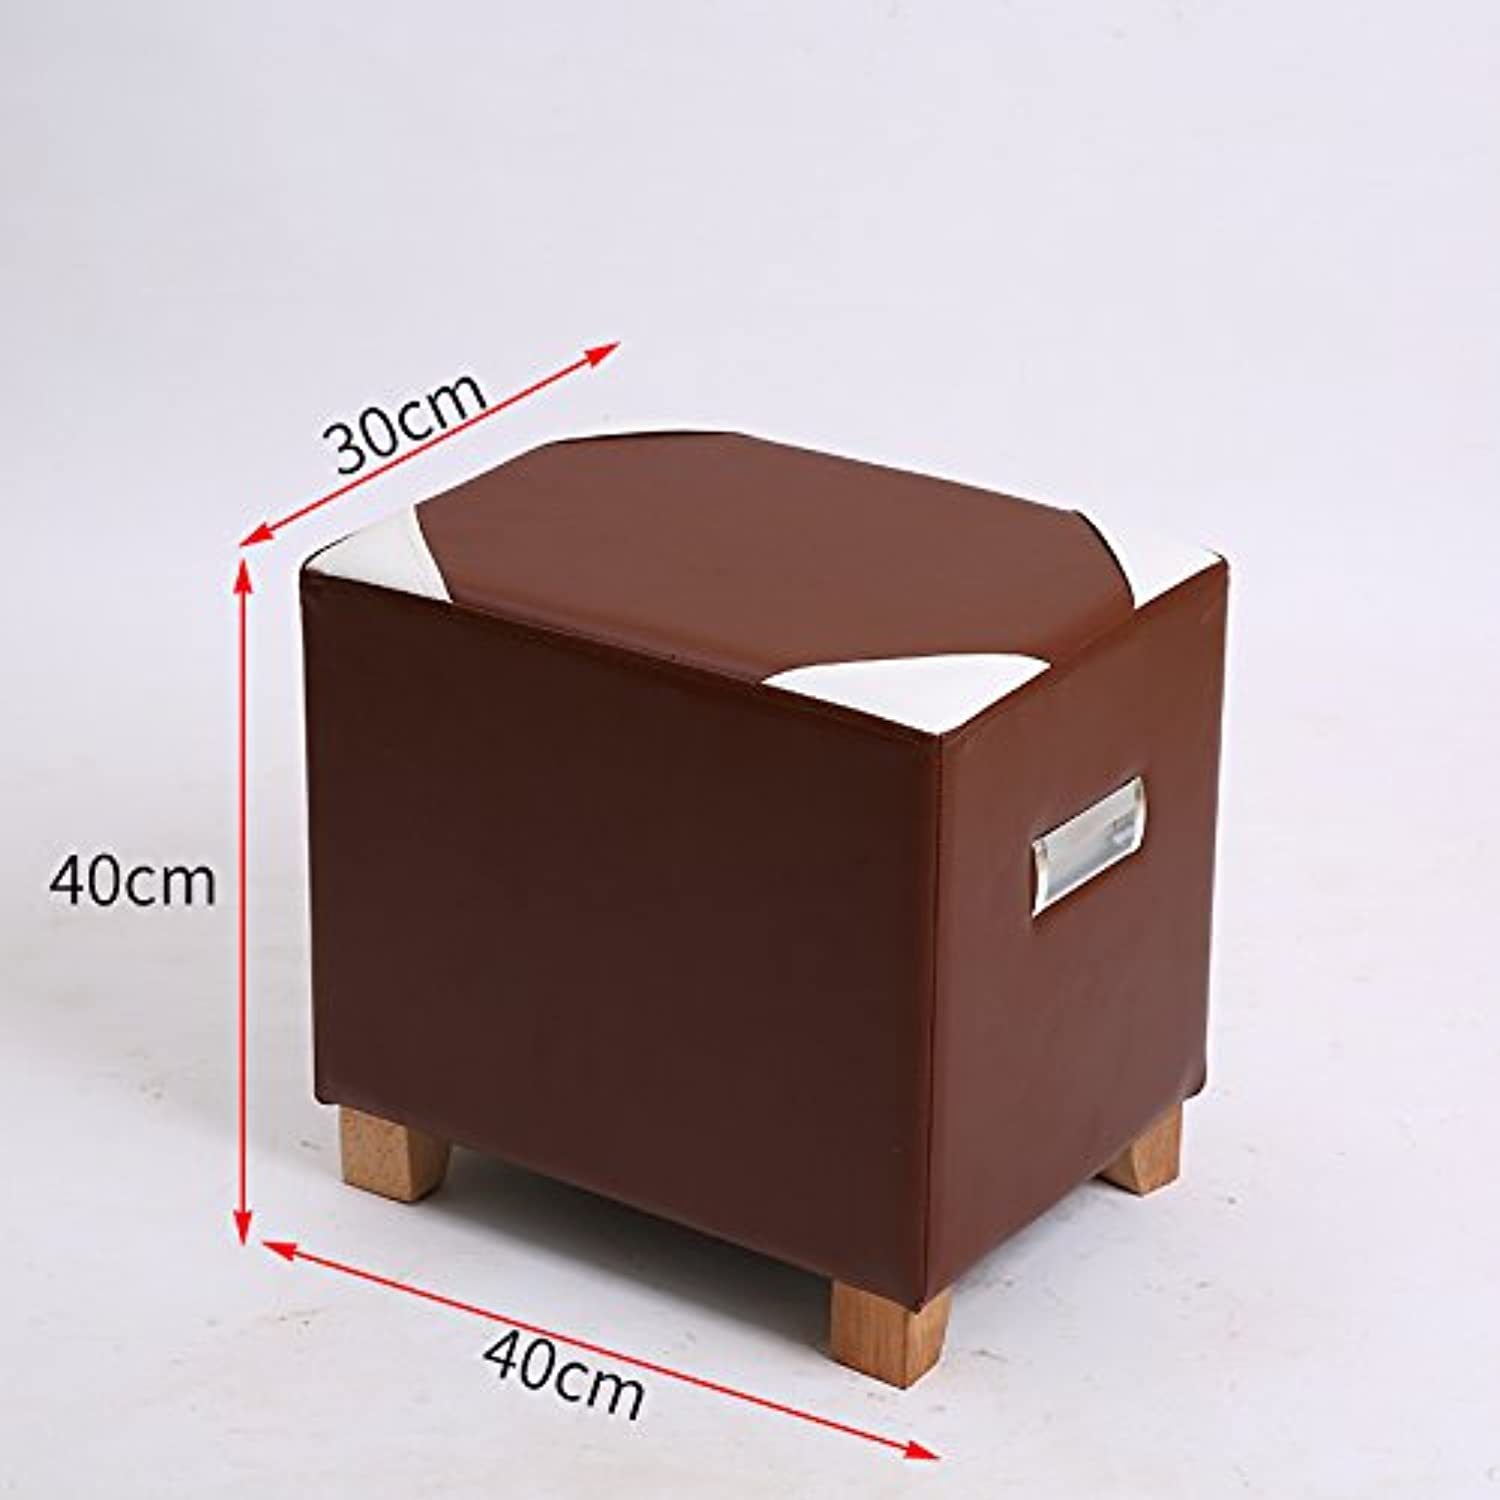 Dana Carrie Stool Stylish Creative Sofa Chair Leather Tun Living Room Fabrics for shoes is Simple and Modern Wooden Sitting on a Low stool,PU Brown